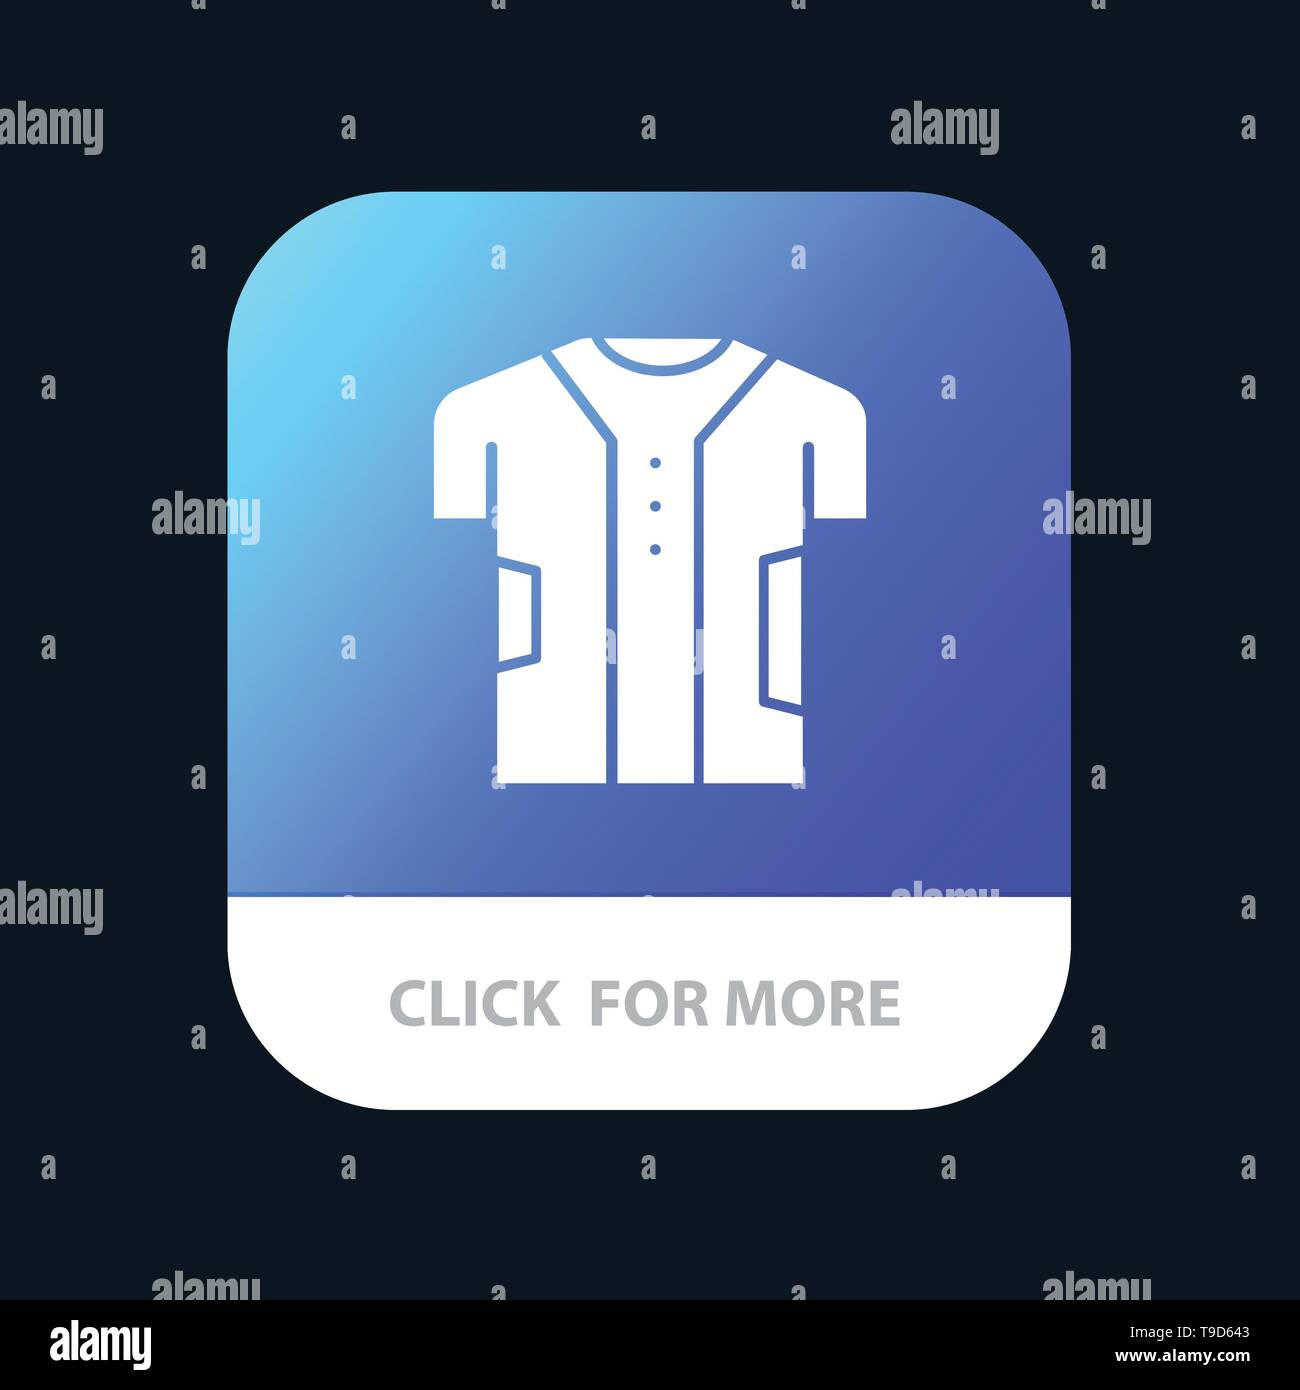 Cloth, Clothing, Digital, Electronic, Fabric Mobile App Button. Android and IOS Glyph Version - Stock Image